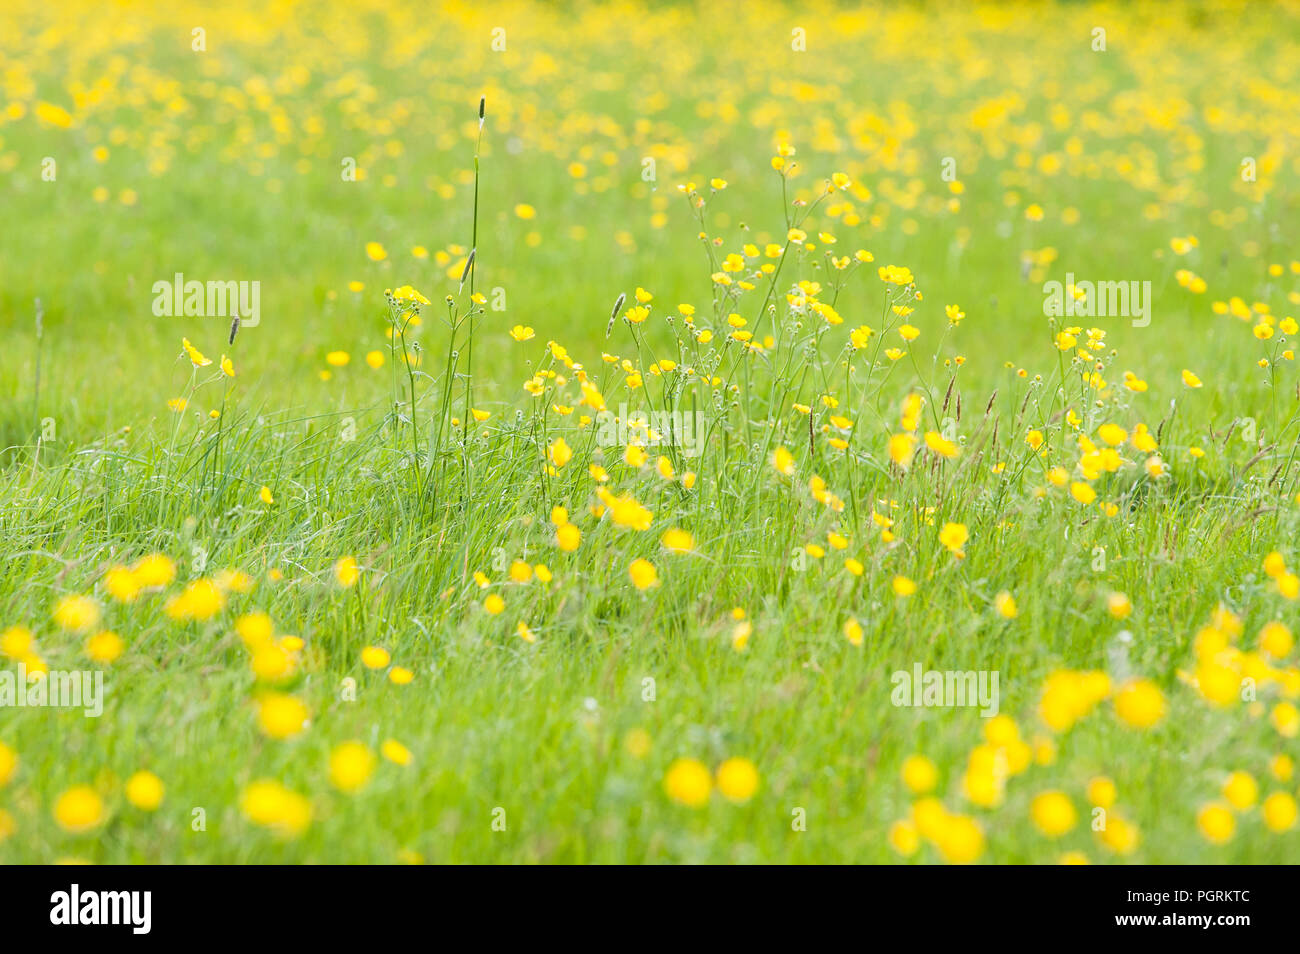 A relaxing and wistful springtime field of buttercups and grass. - Stock Image